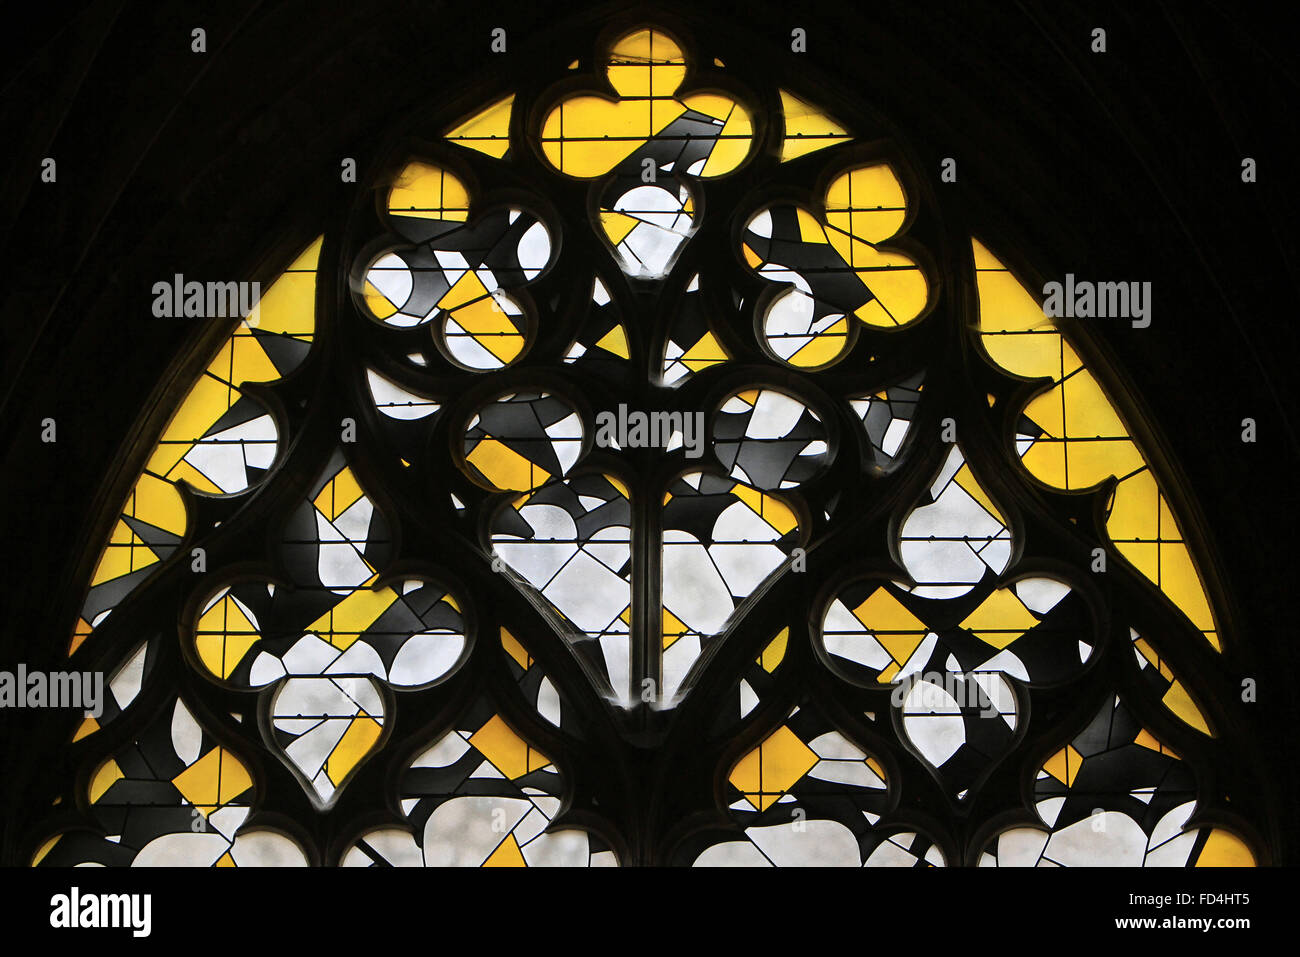 Contemporary yellow stained glass window. - Stock Image